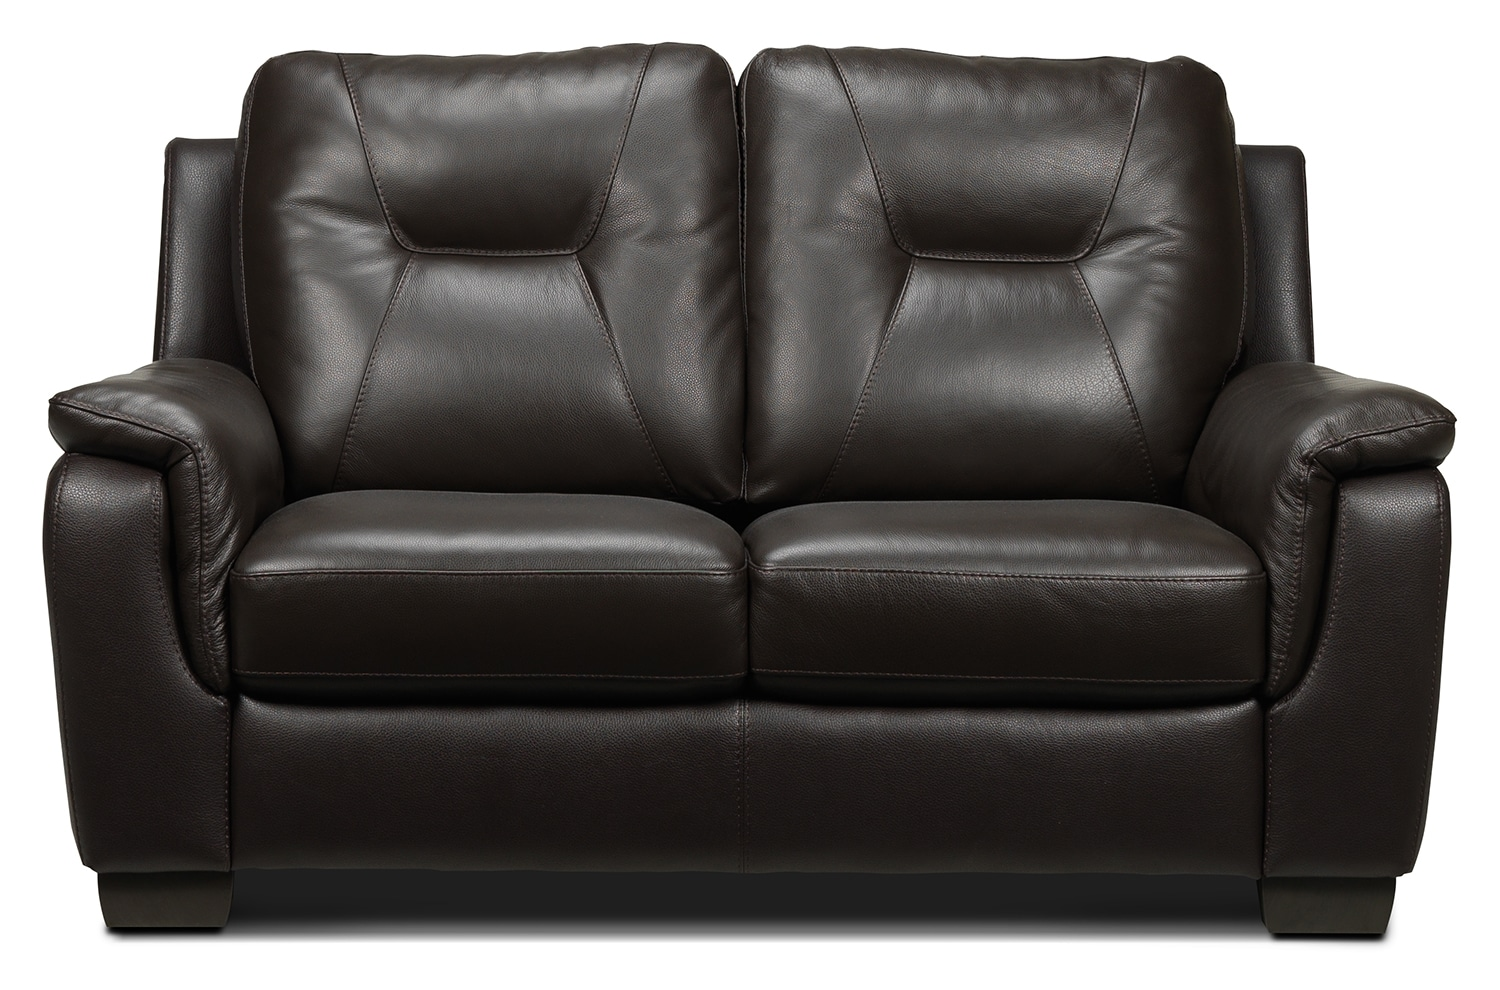 Living Room Furniture - Dalia Loveseat - Espresso